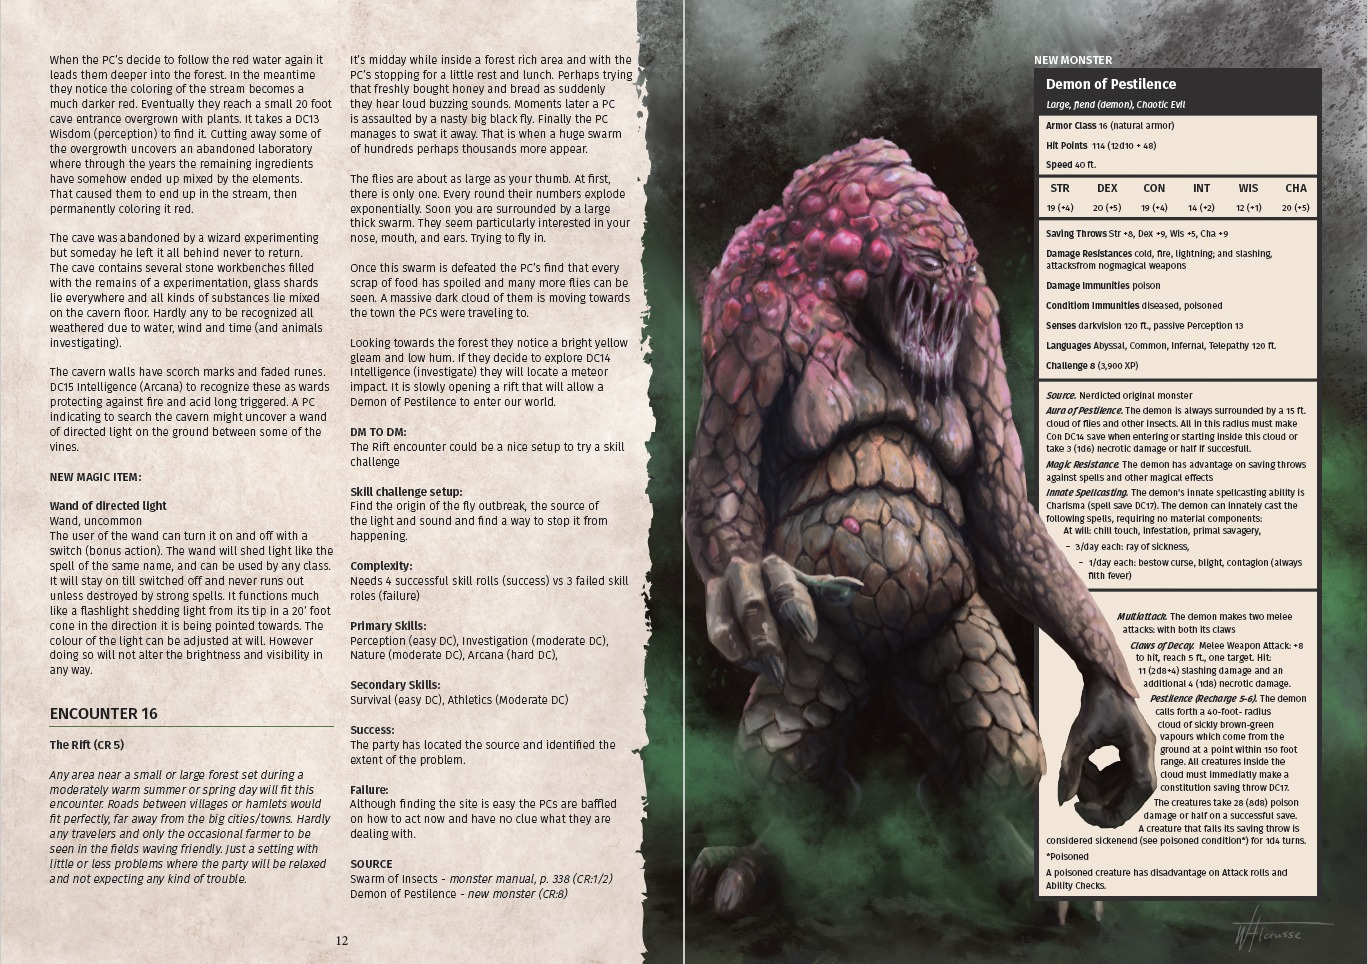 21 Freaky Forest Encounters Demon of Pestilence